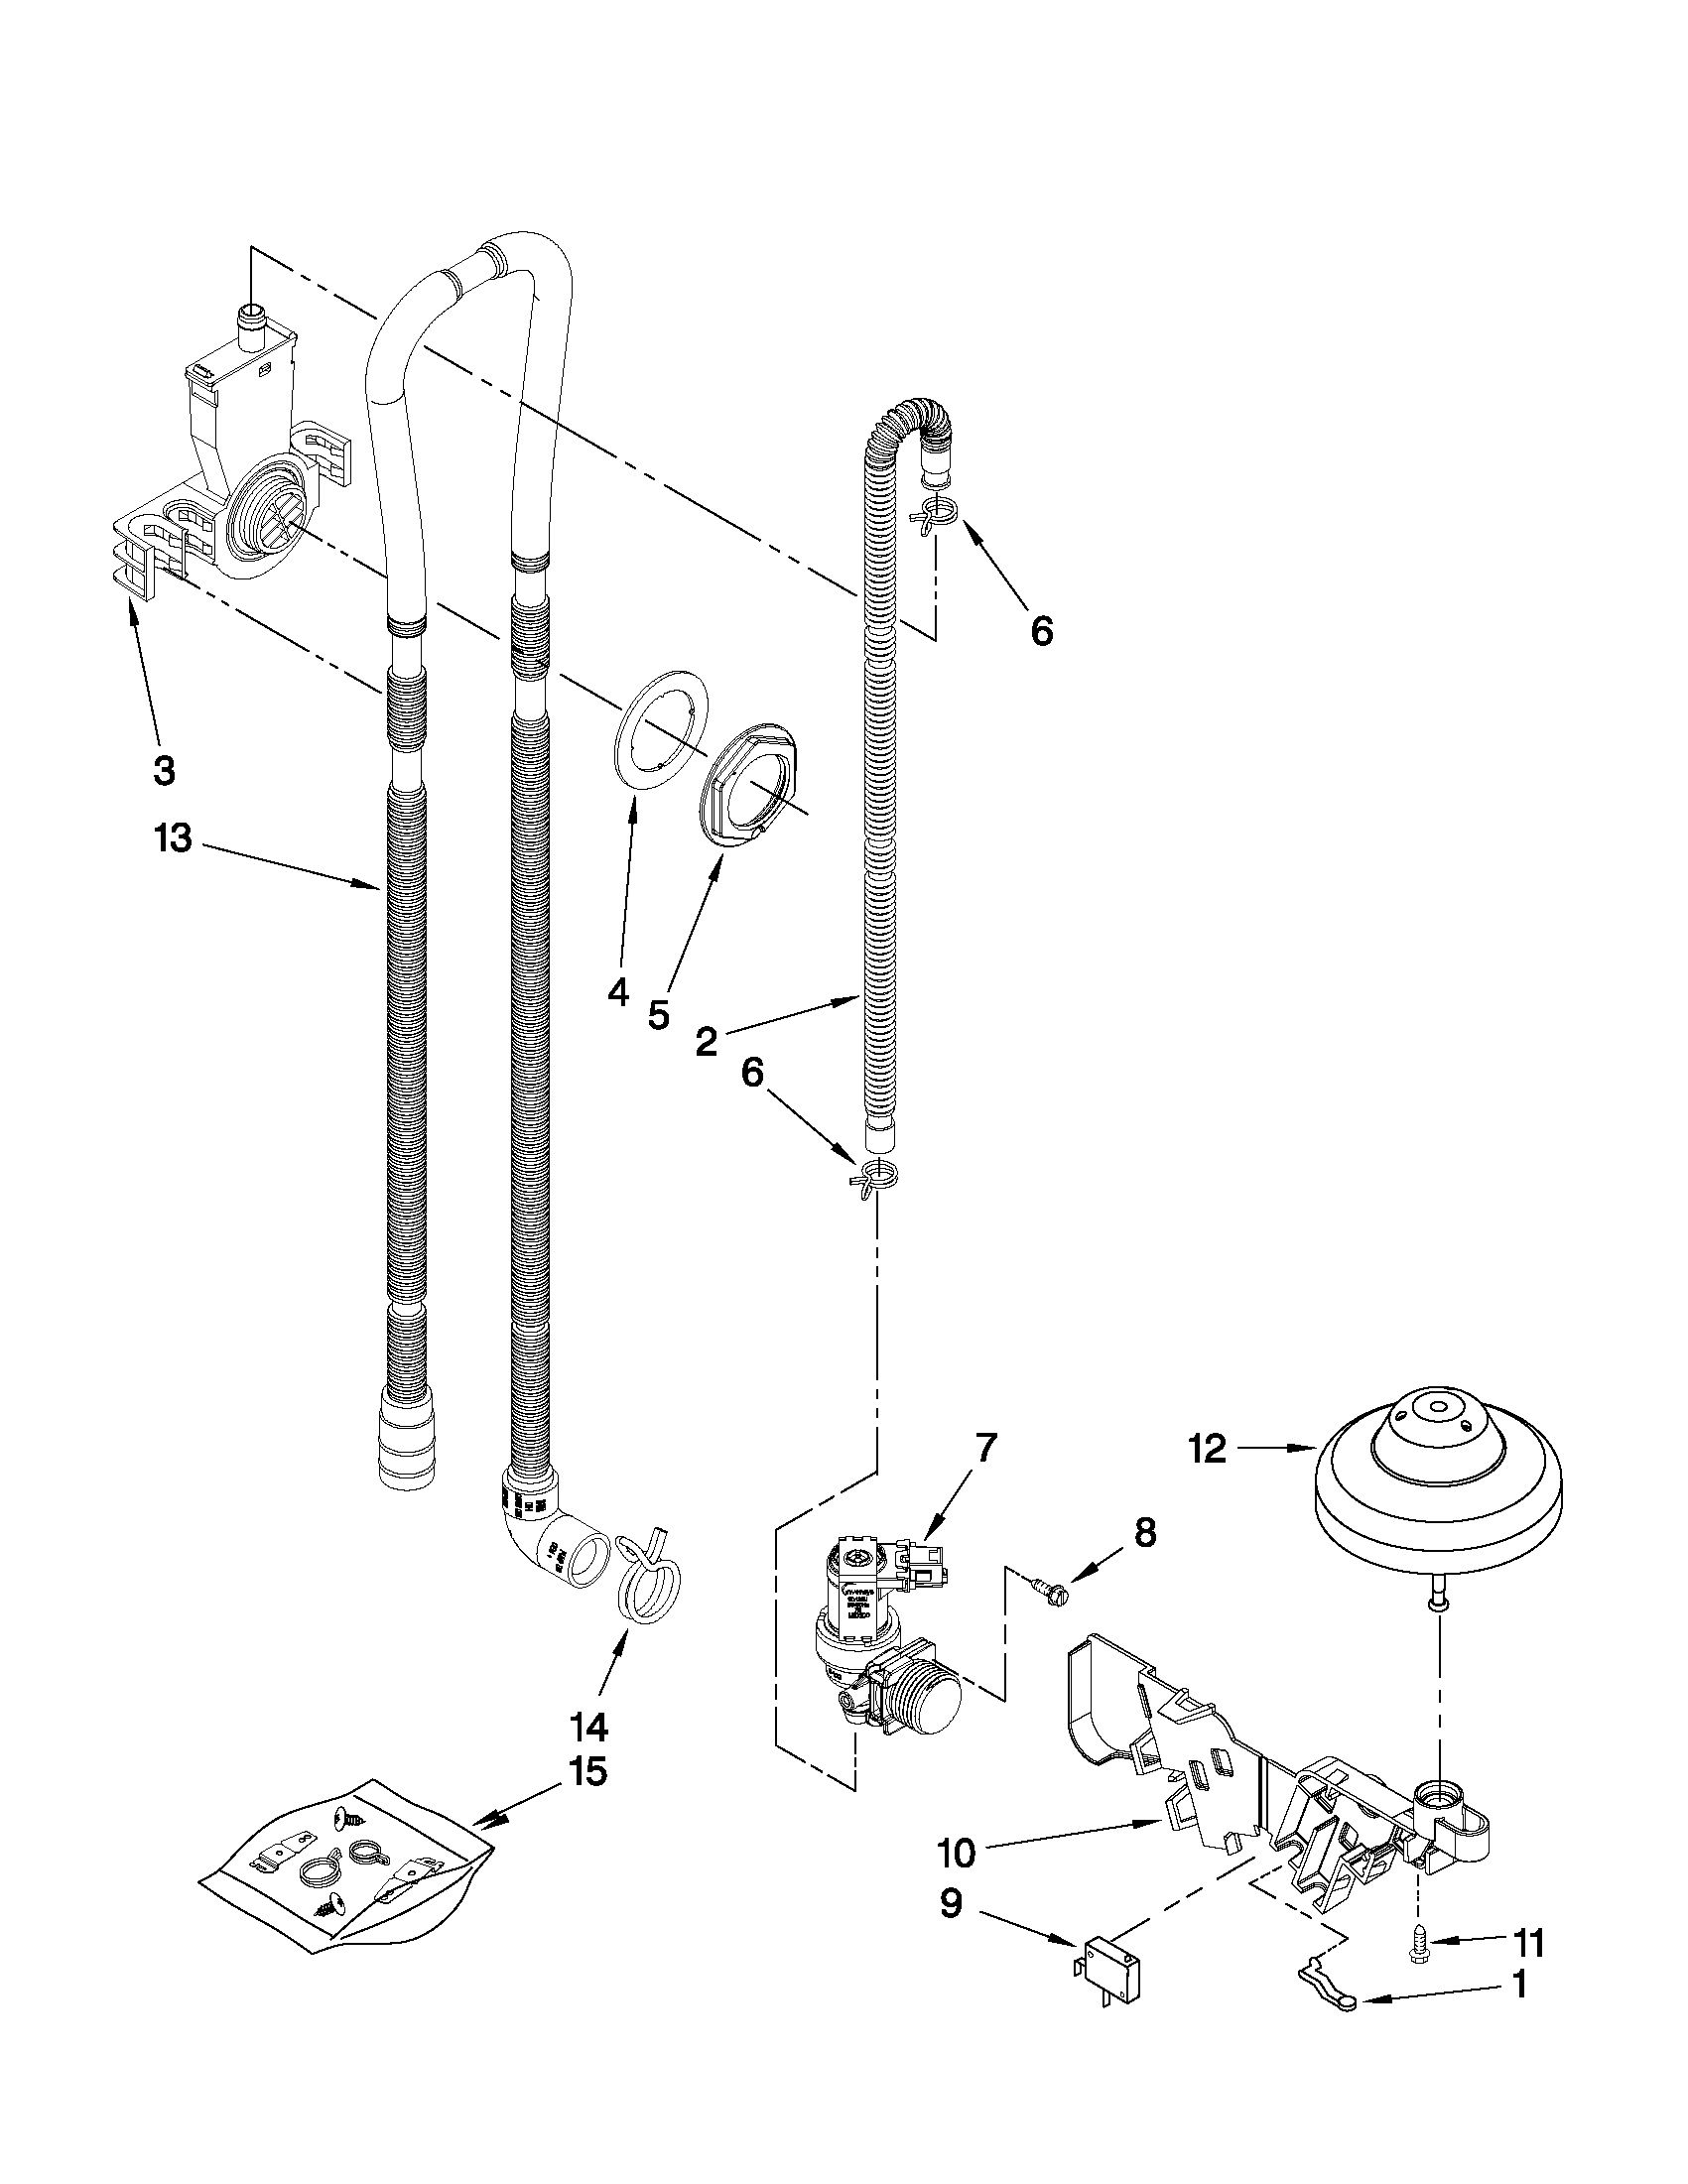 Whirlpool DU1345XTVQ5 fill, drain and overfill parts diagram